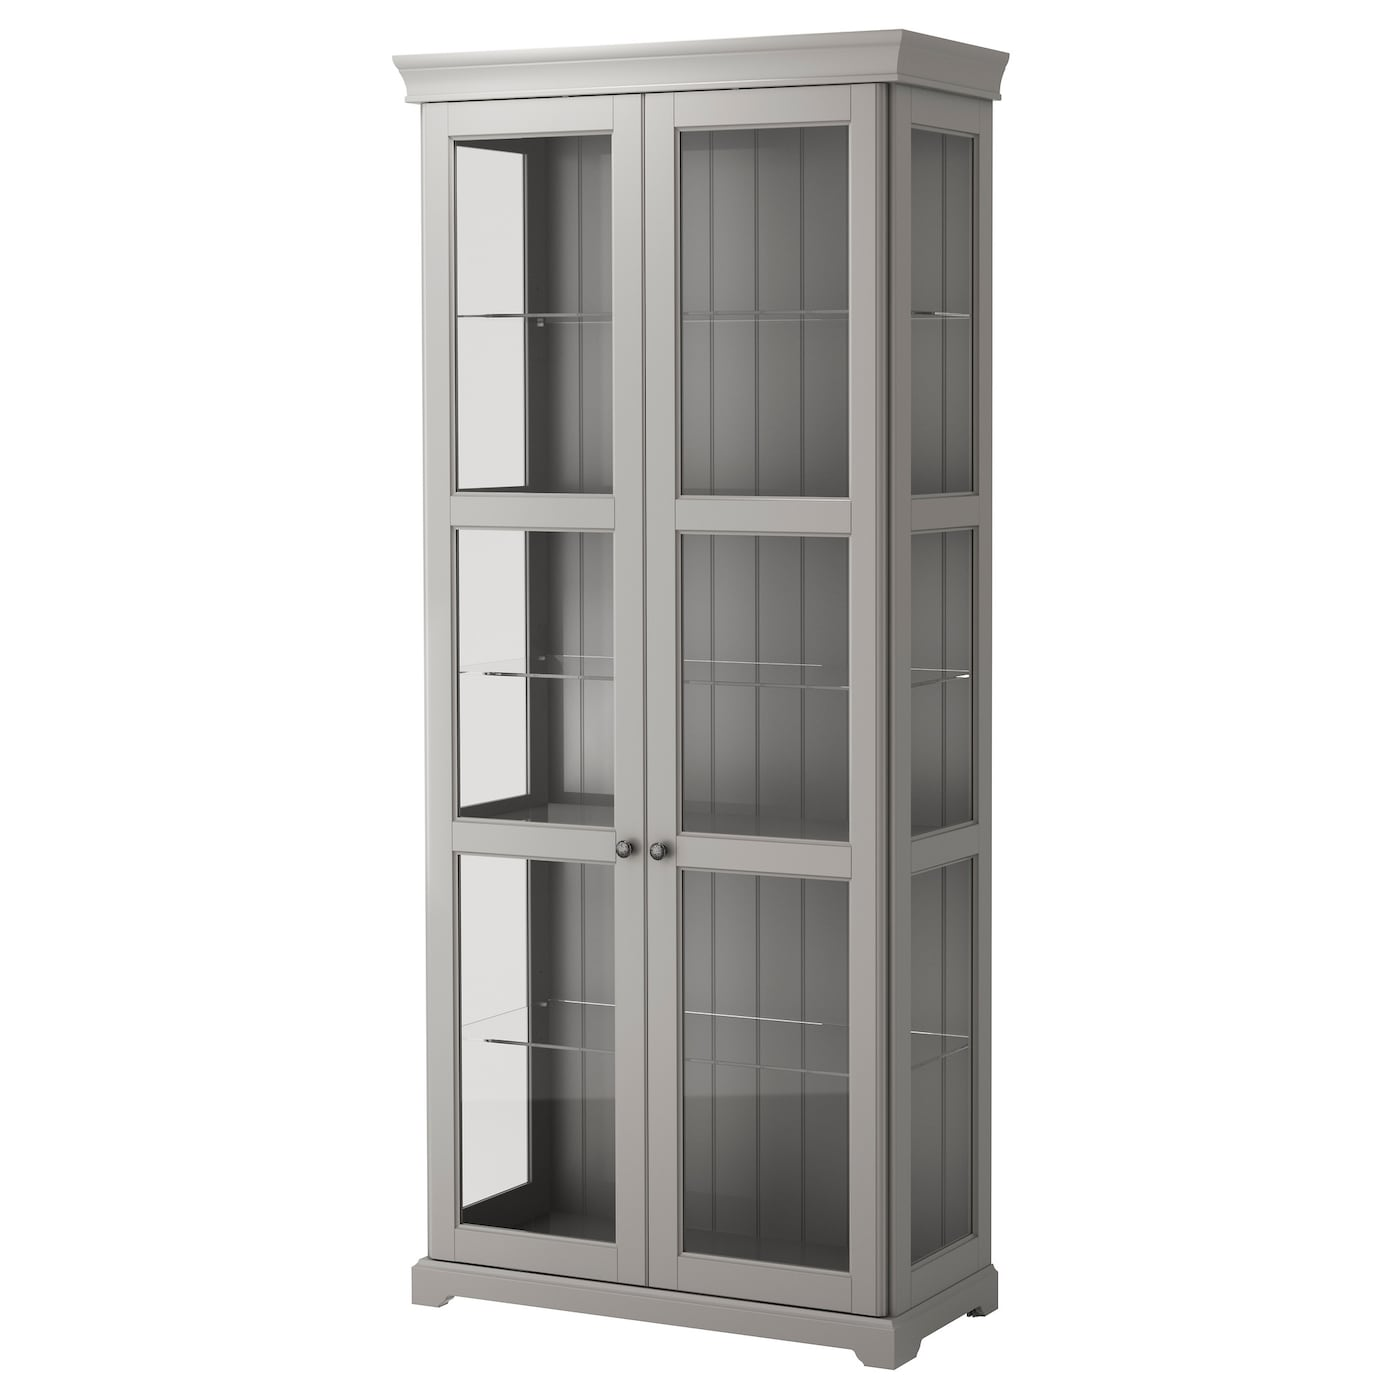 LIATORP Glass-door cabinet Grey 96x214 cm - IKEA